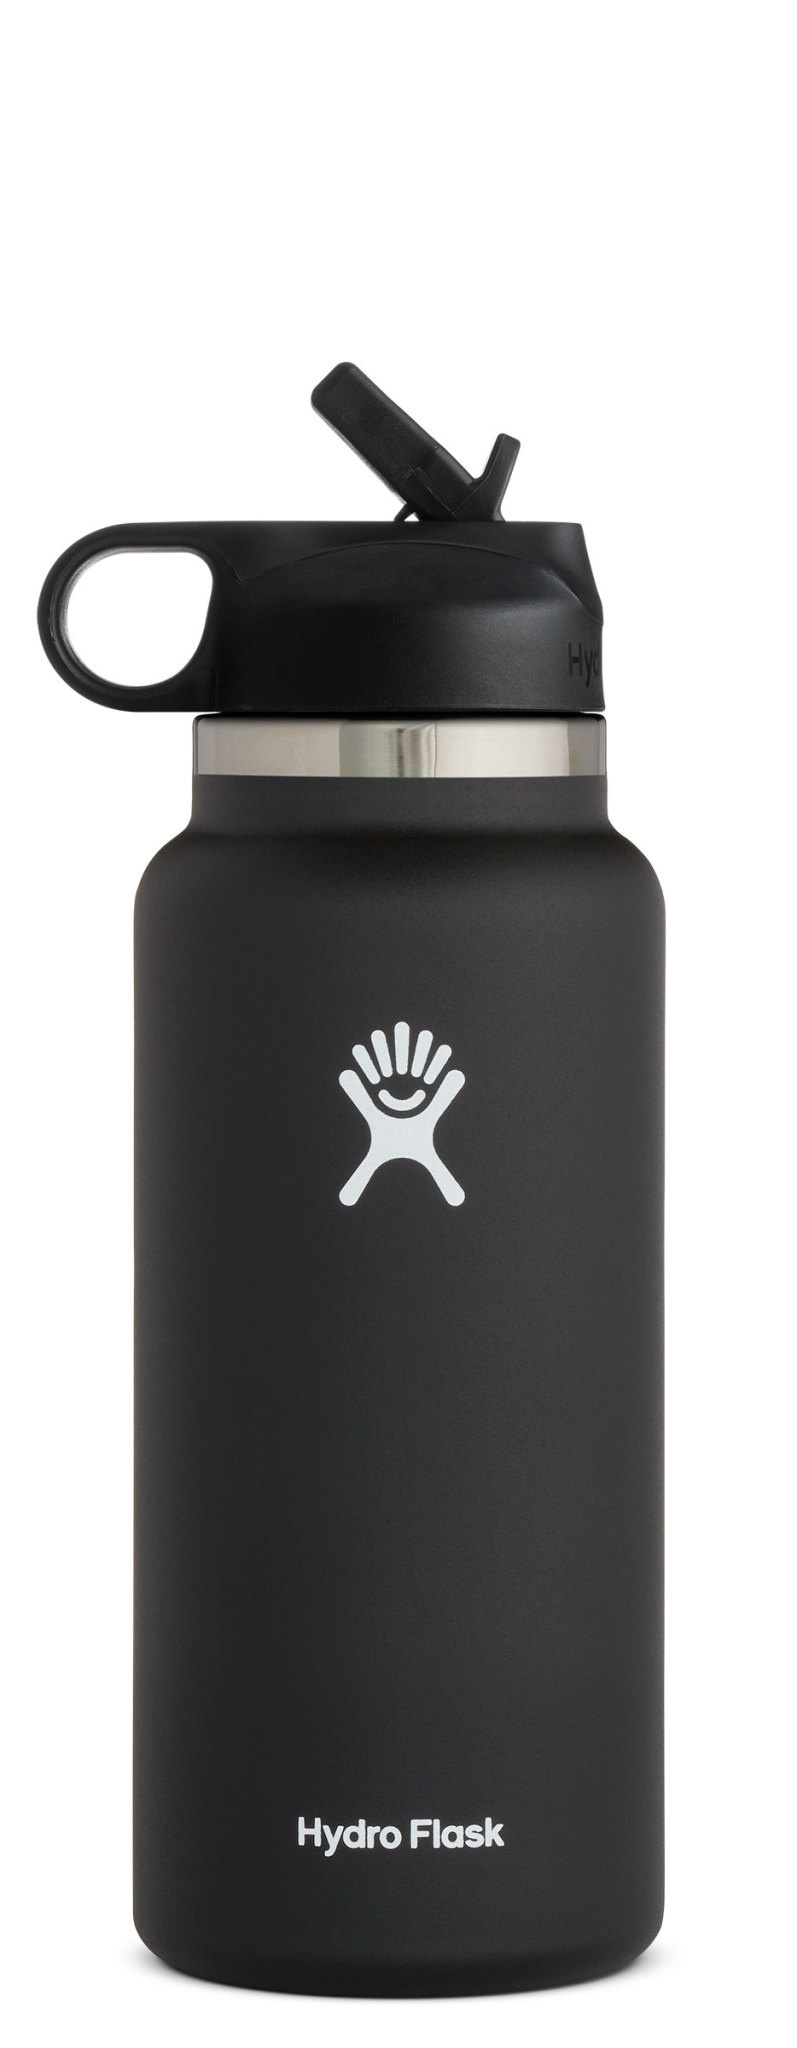 Hydro Flask 32oz Wide Mouth with Straw Lid-8